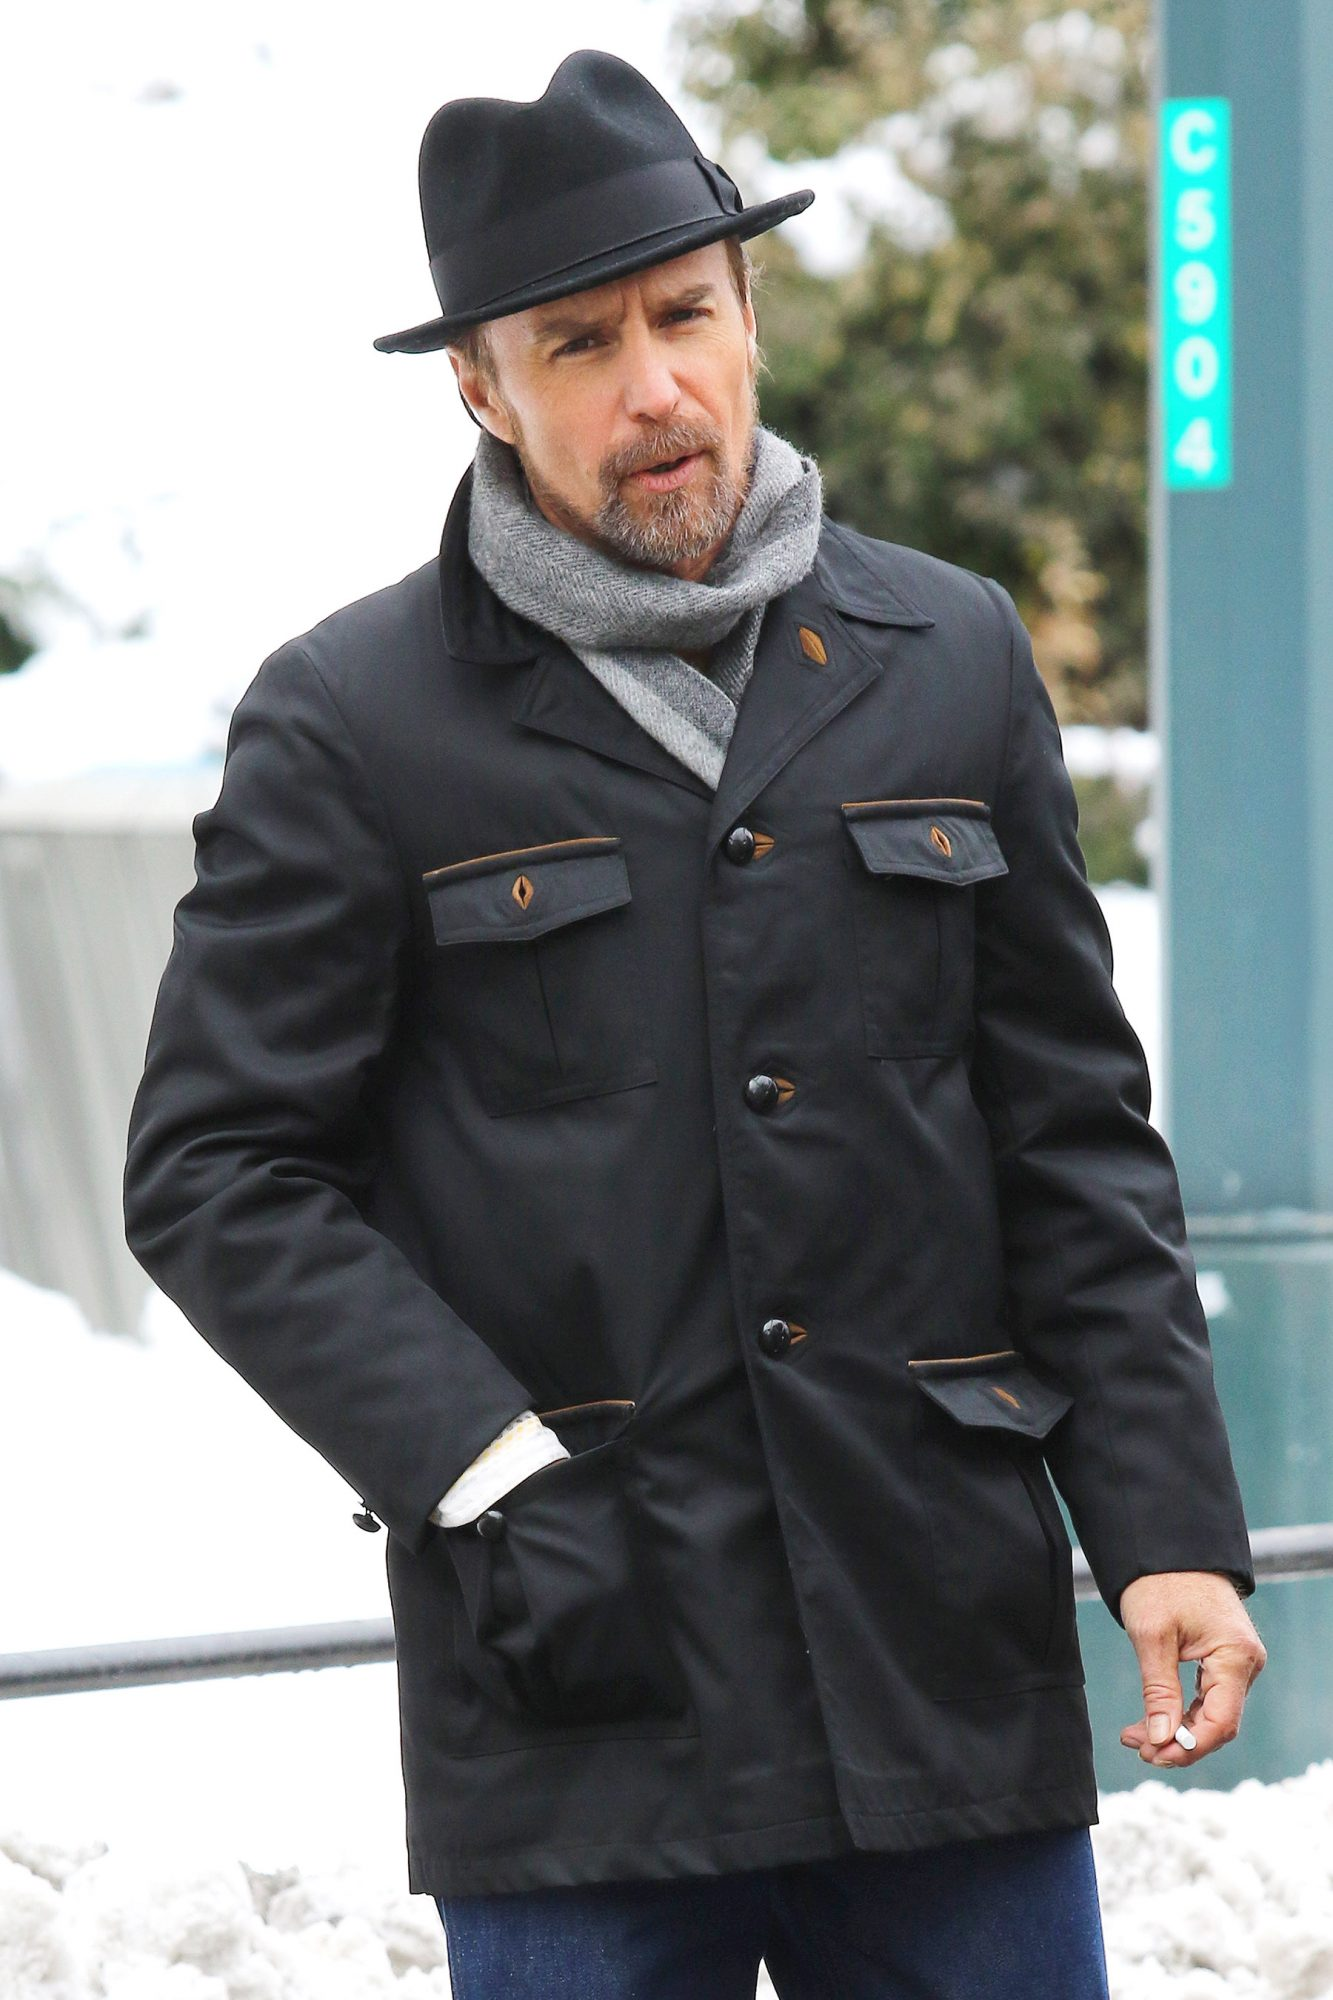 Sam Rockwell Braves The Cold Wintry Weather While Filming FOSSE/VERDON In New York City